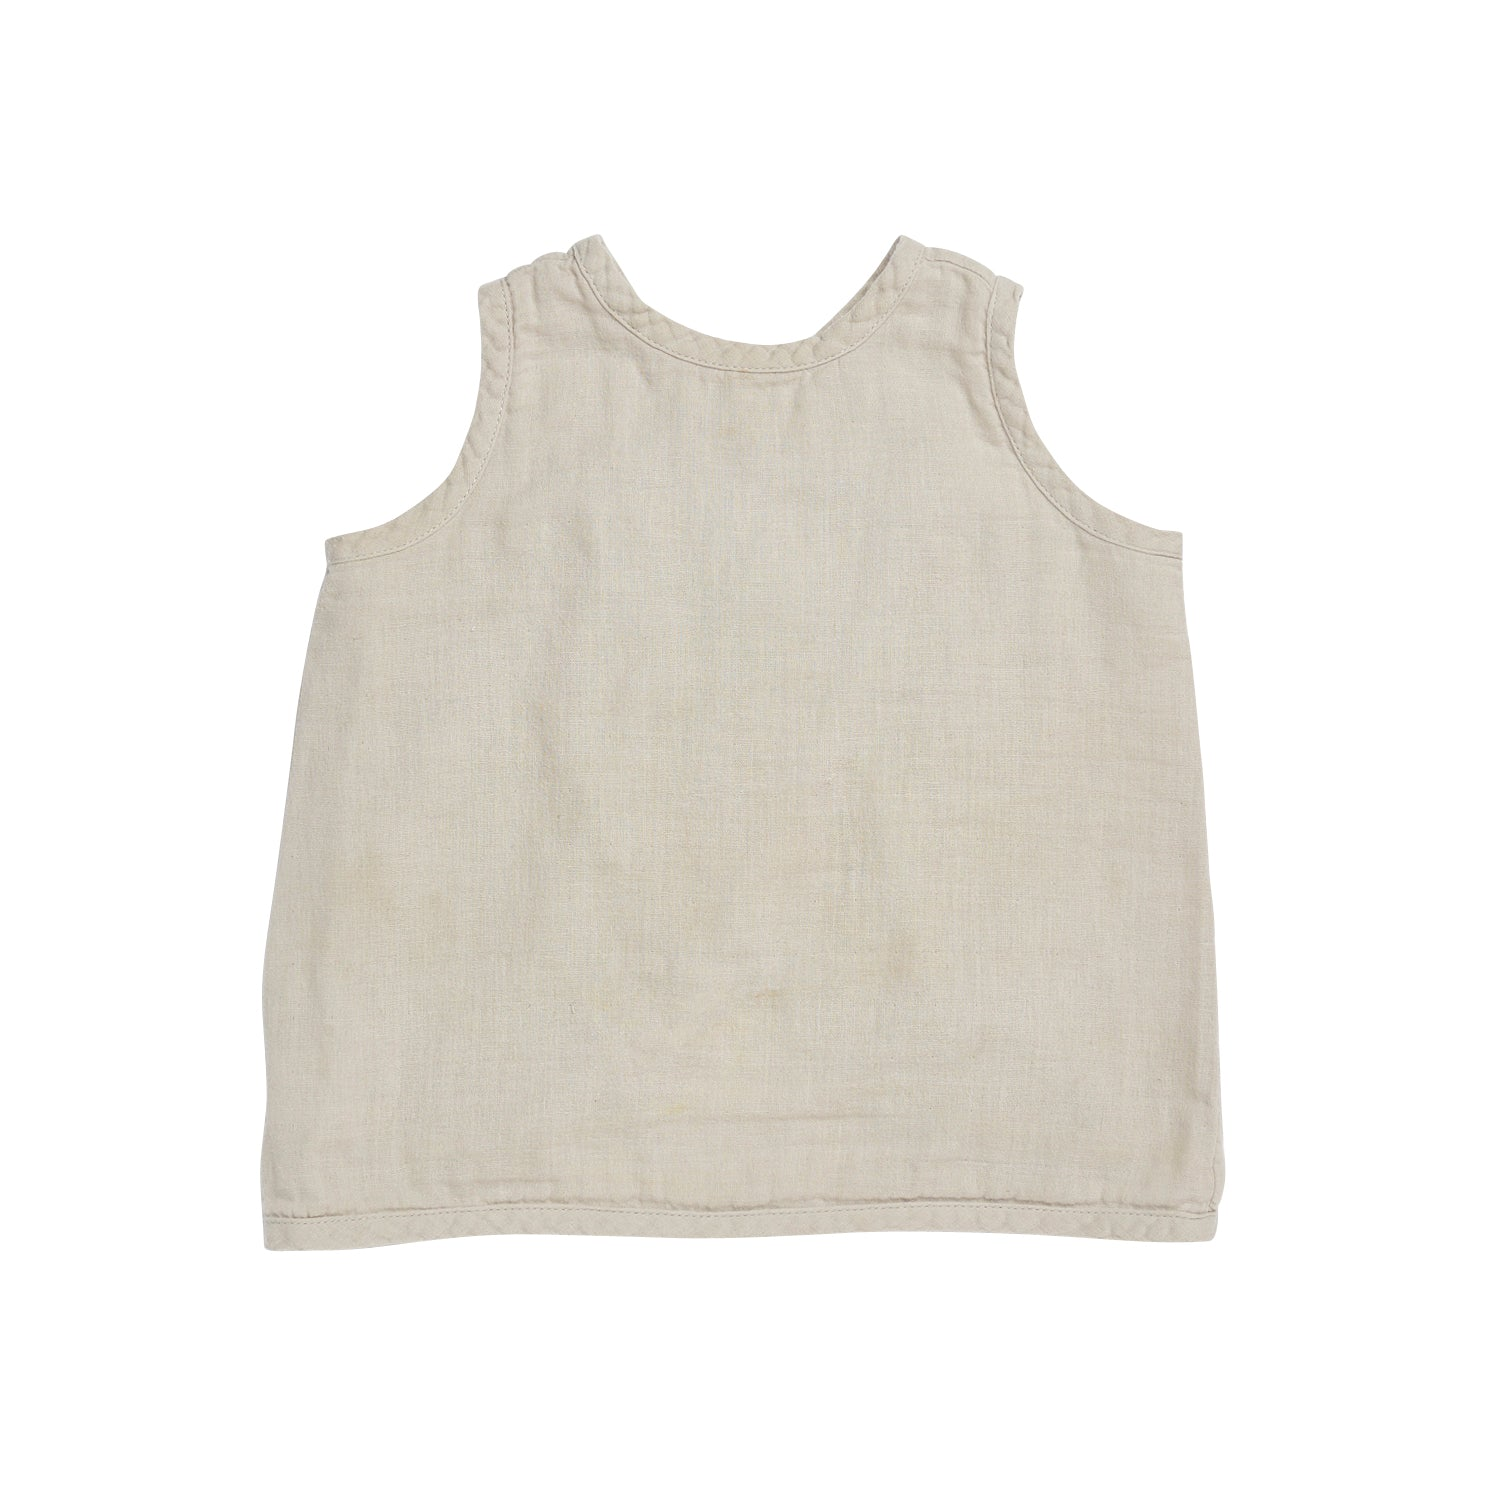 Bacabuche Cross Back Baby & Toddler's Tank in Dove Grey | BIEN BIEN